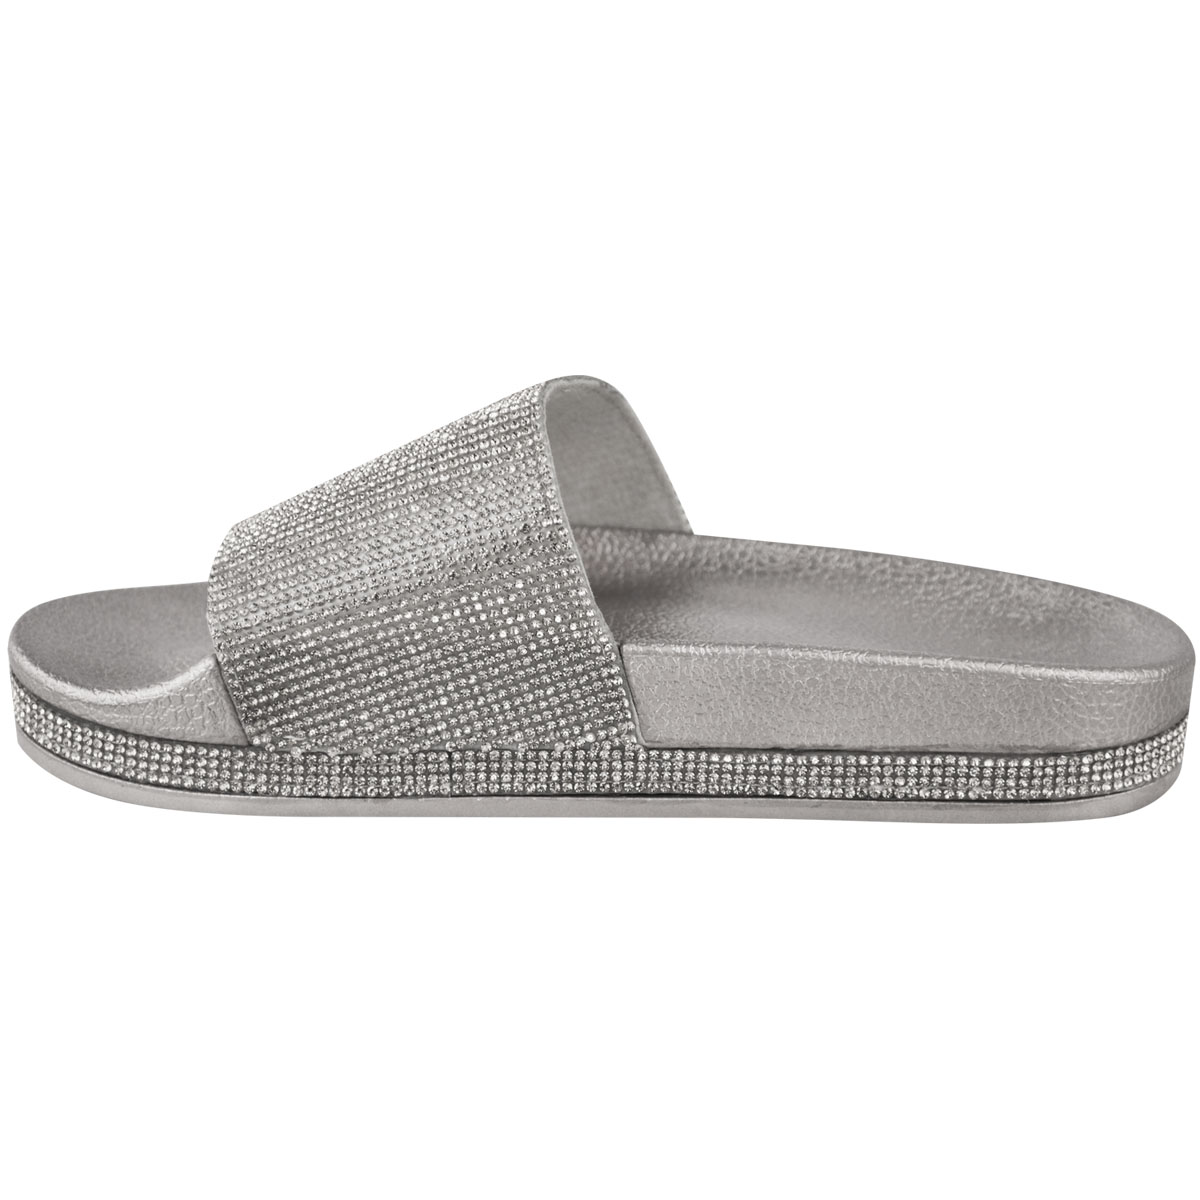 Womens-Ladies-Flat-Slides-Sandals-Diamante-Sparkly-Sliders-Slippers-Shoes-Size thumbnail 9